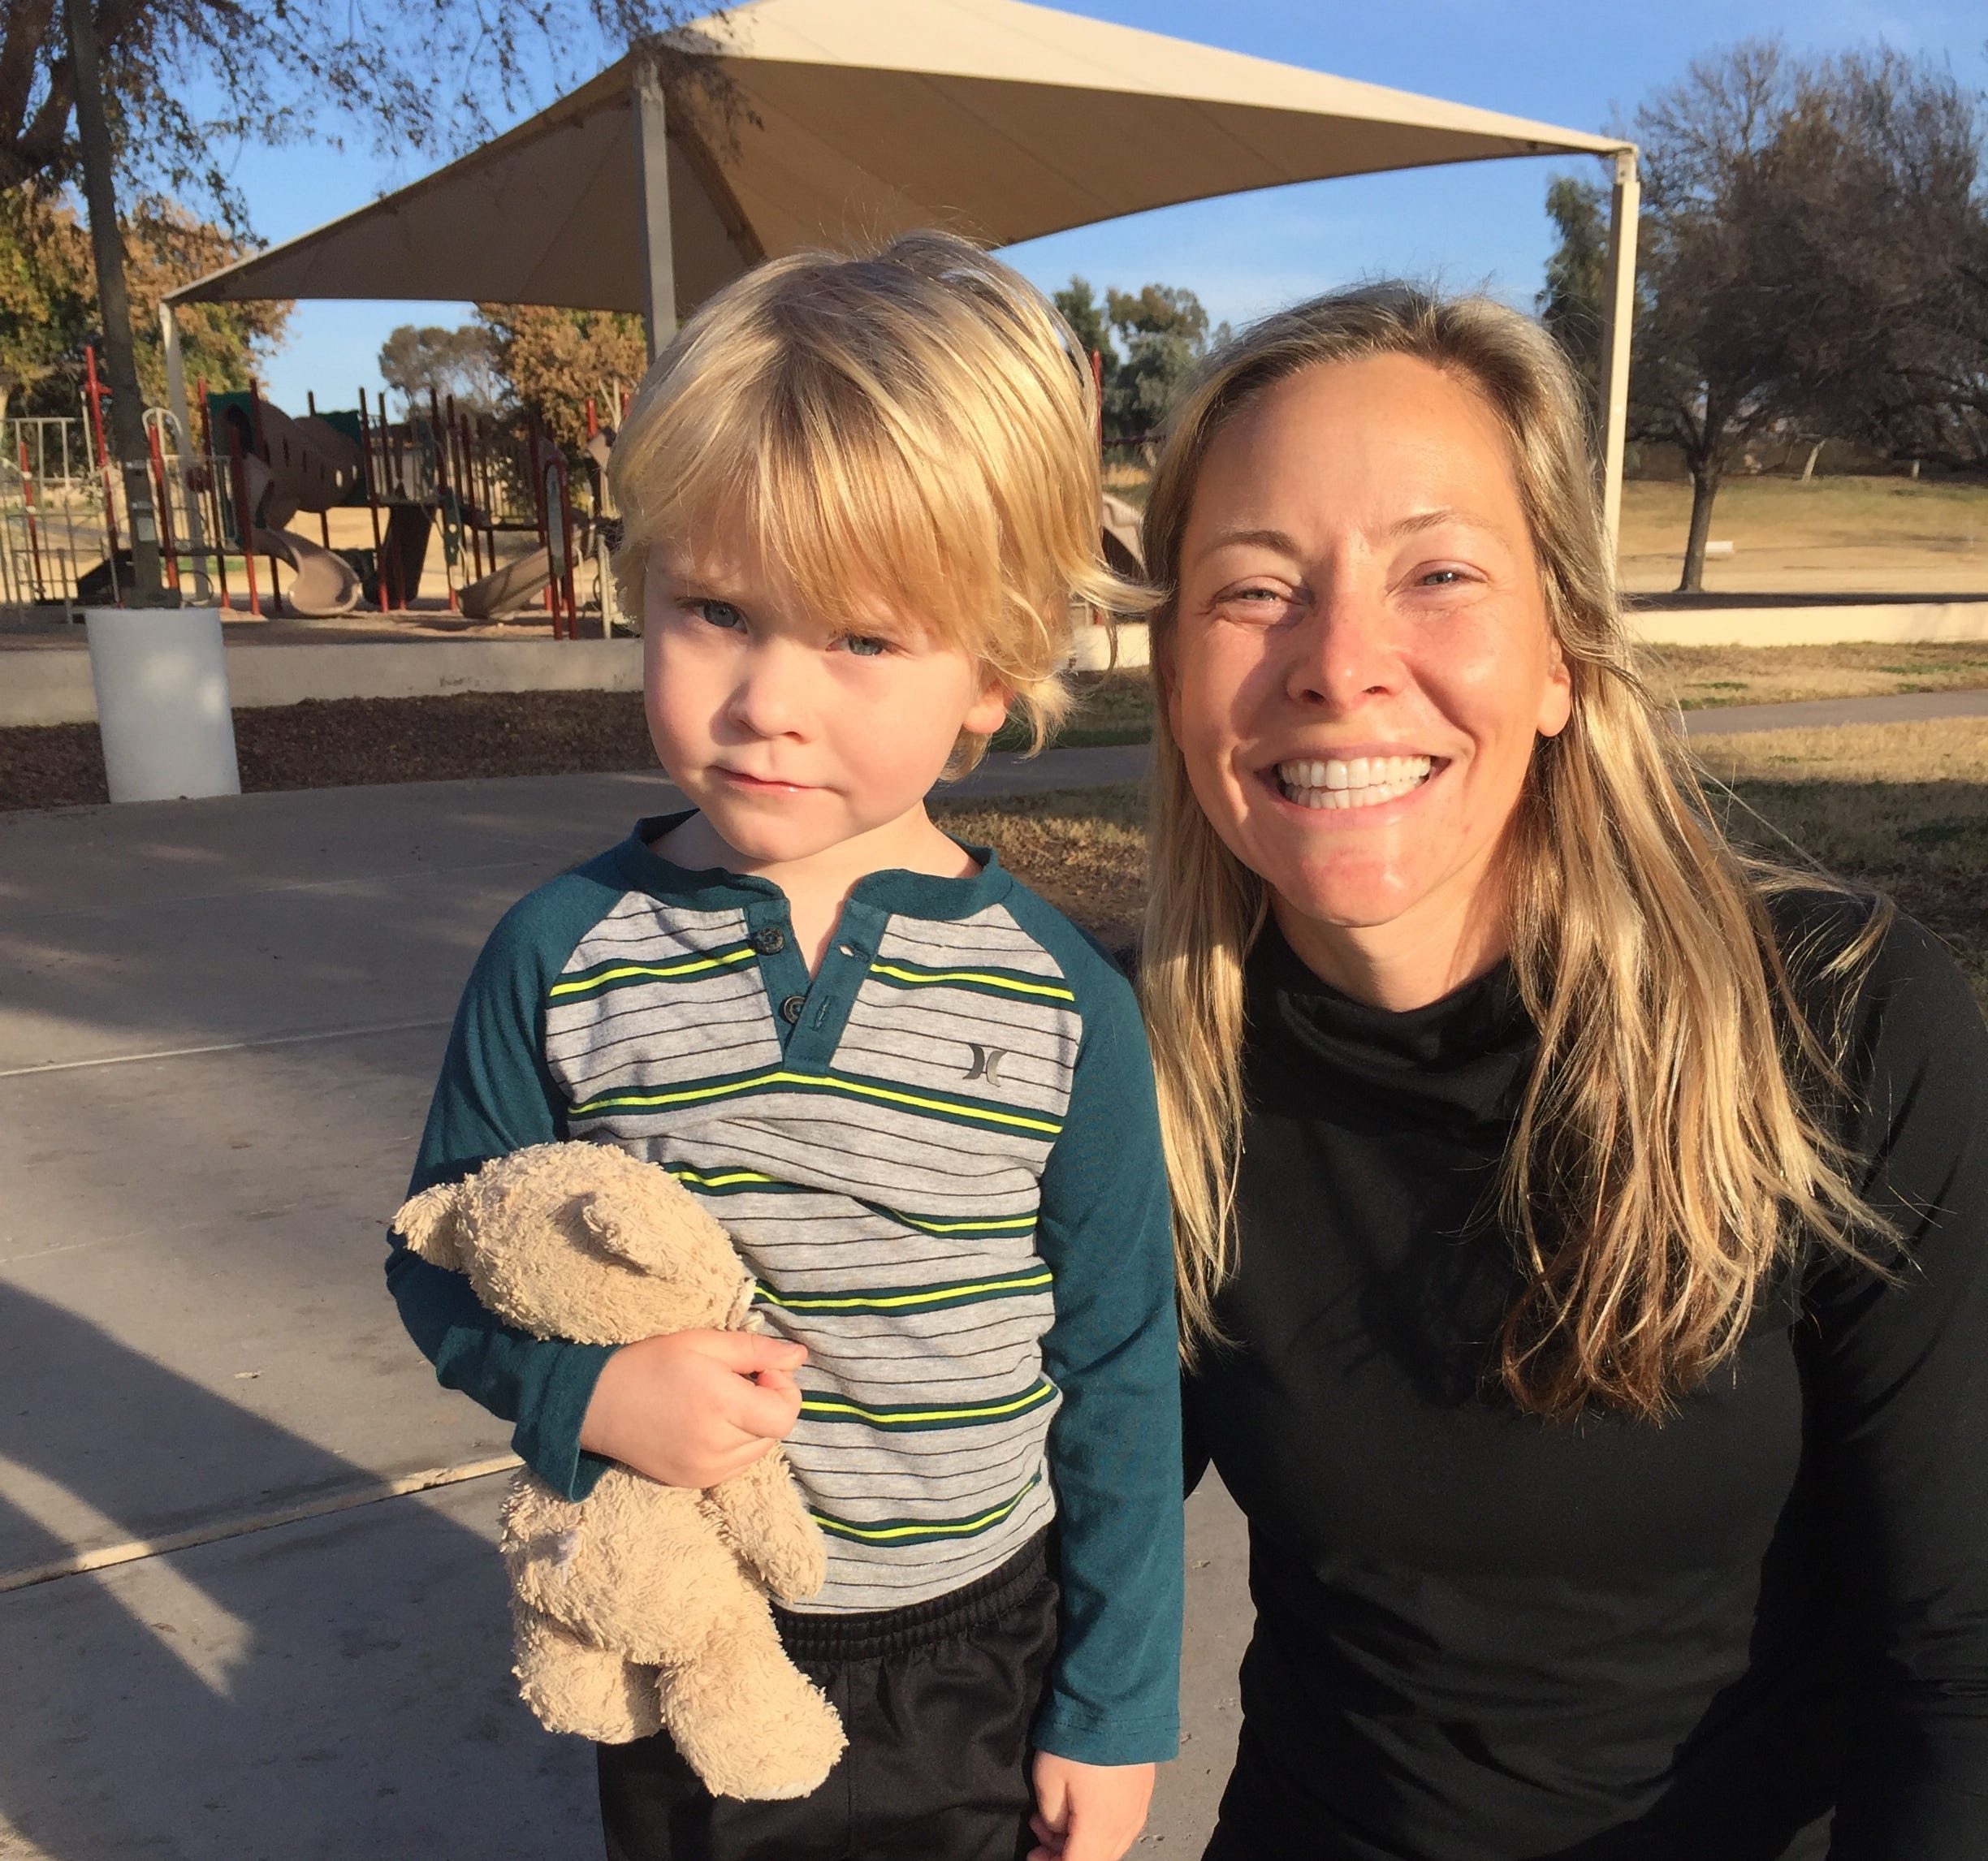 Gina Horne Bernbaum helped to reunite Tommy with Little Teddy after she found the beloved bear at Cactus Park.